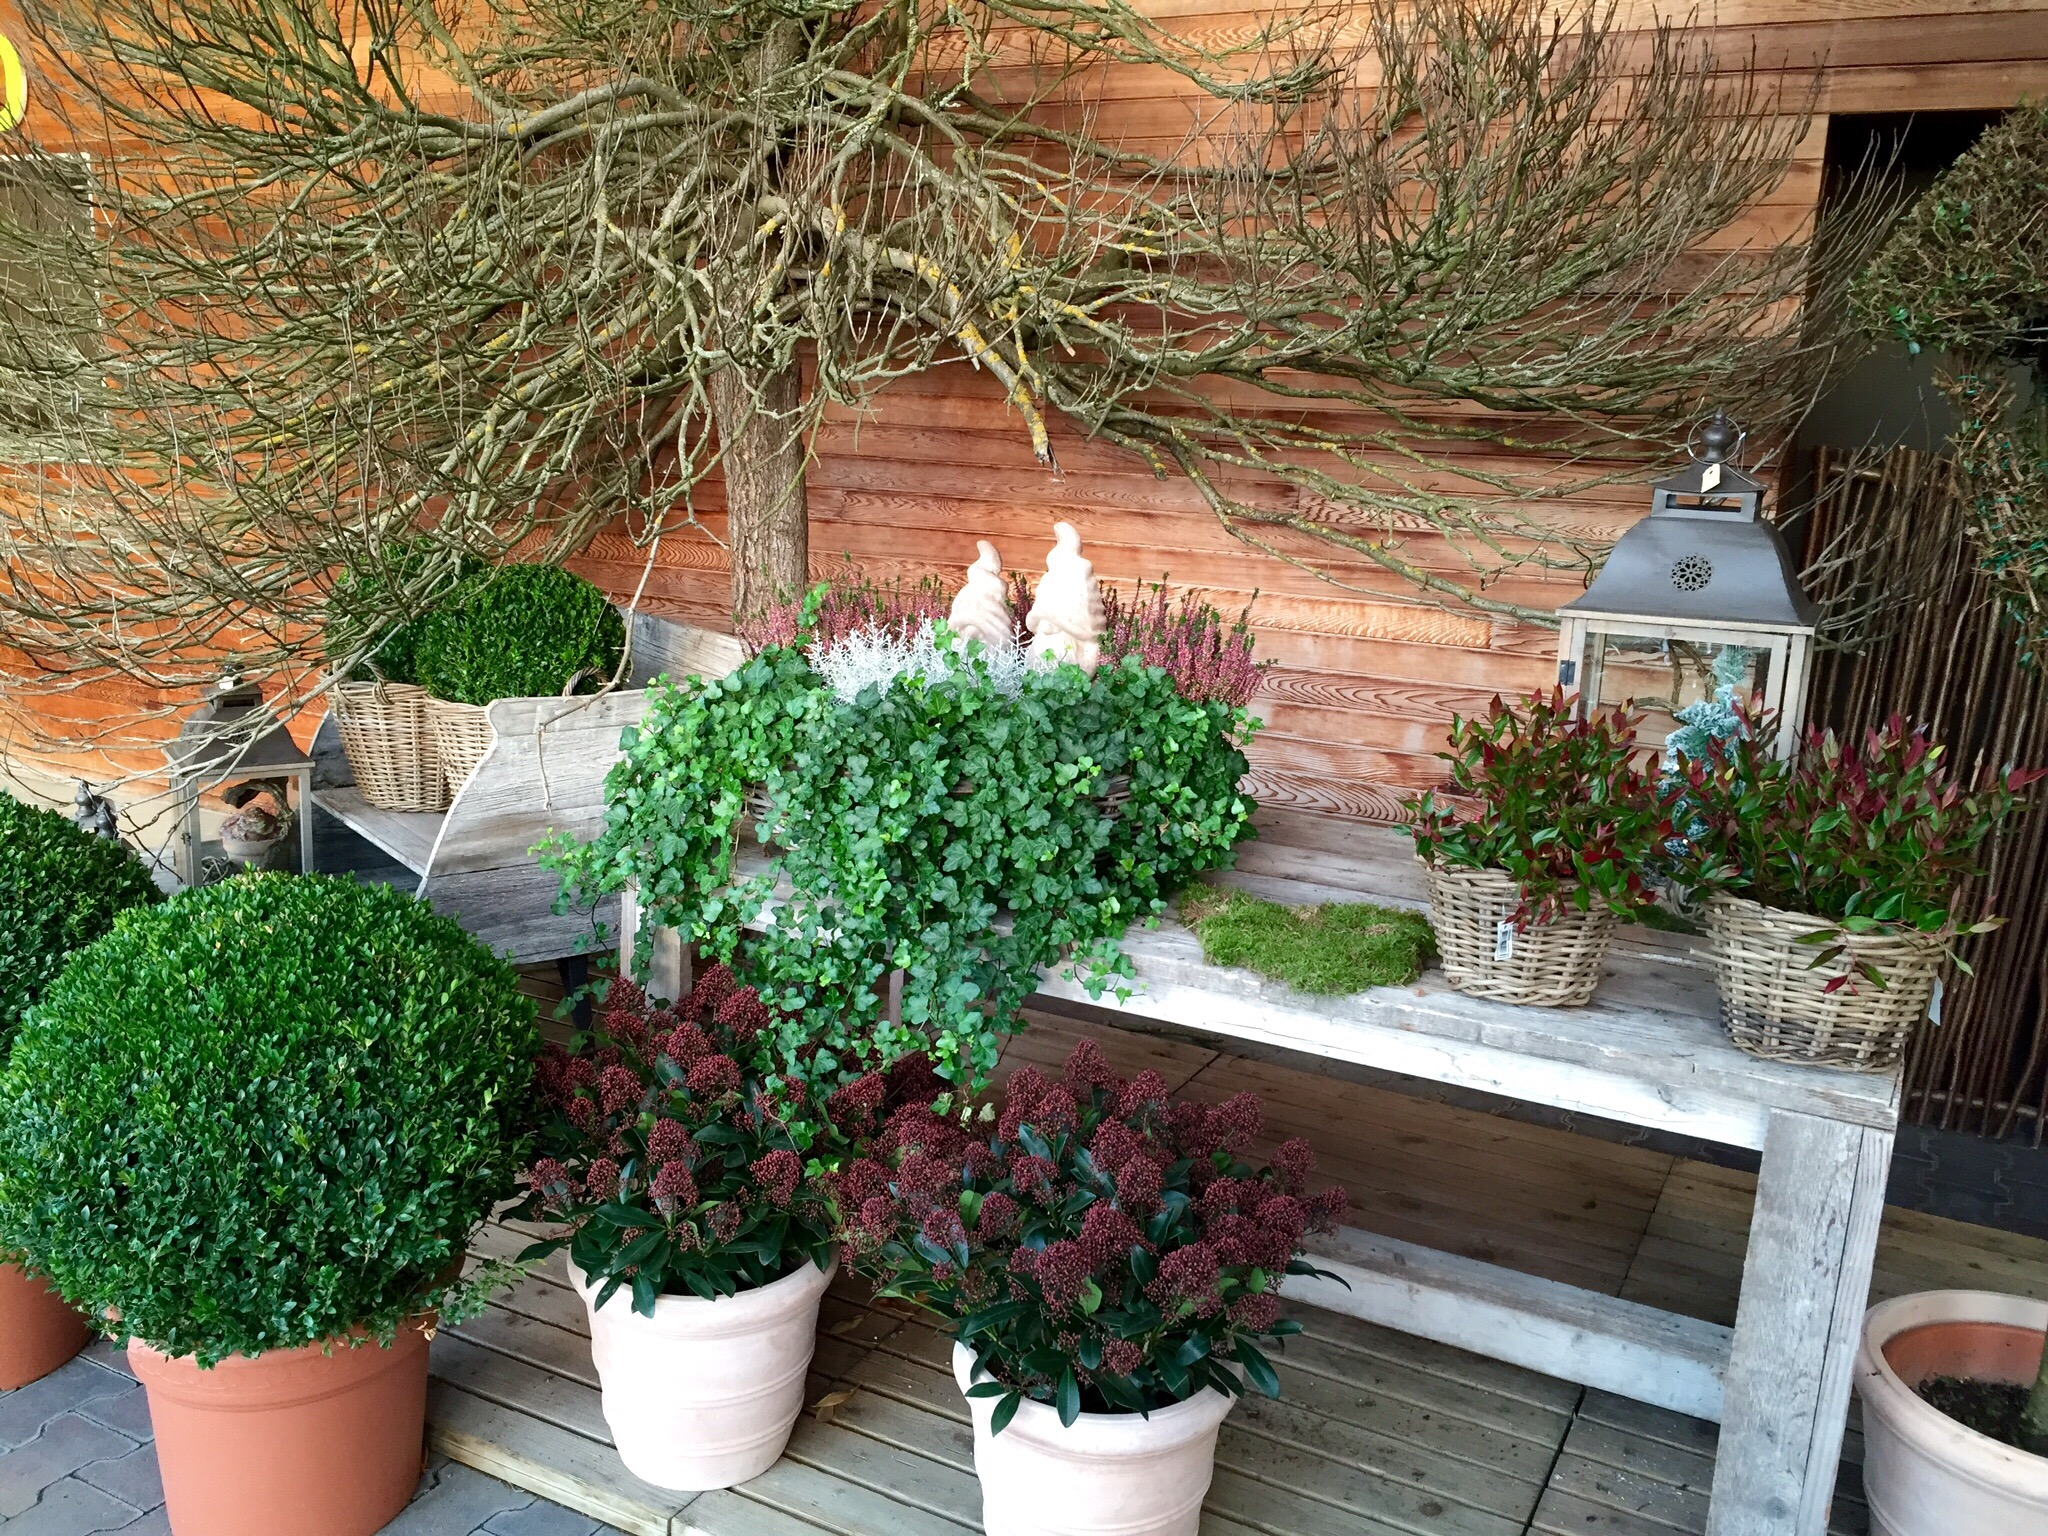 Planting Containers for Winter Colour – The Frustrated Gardener